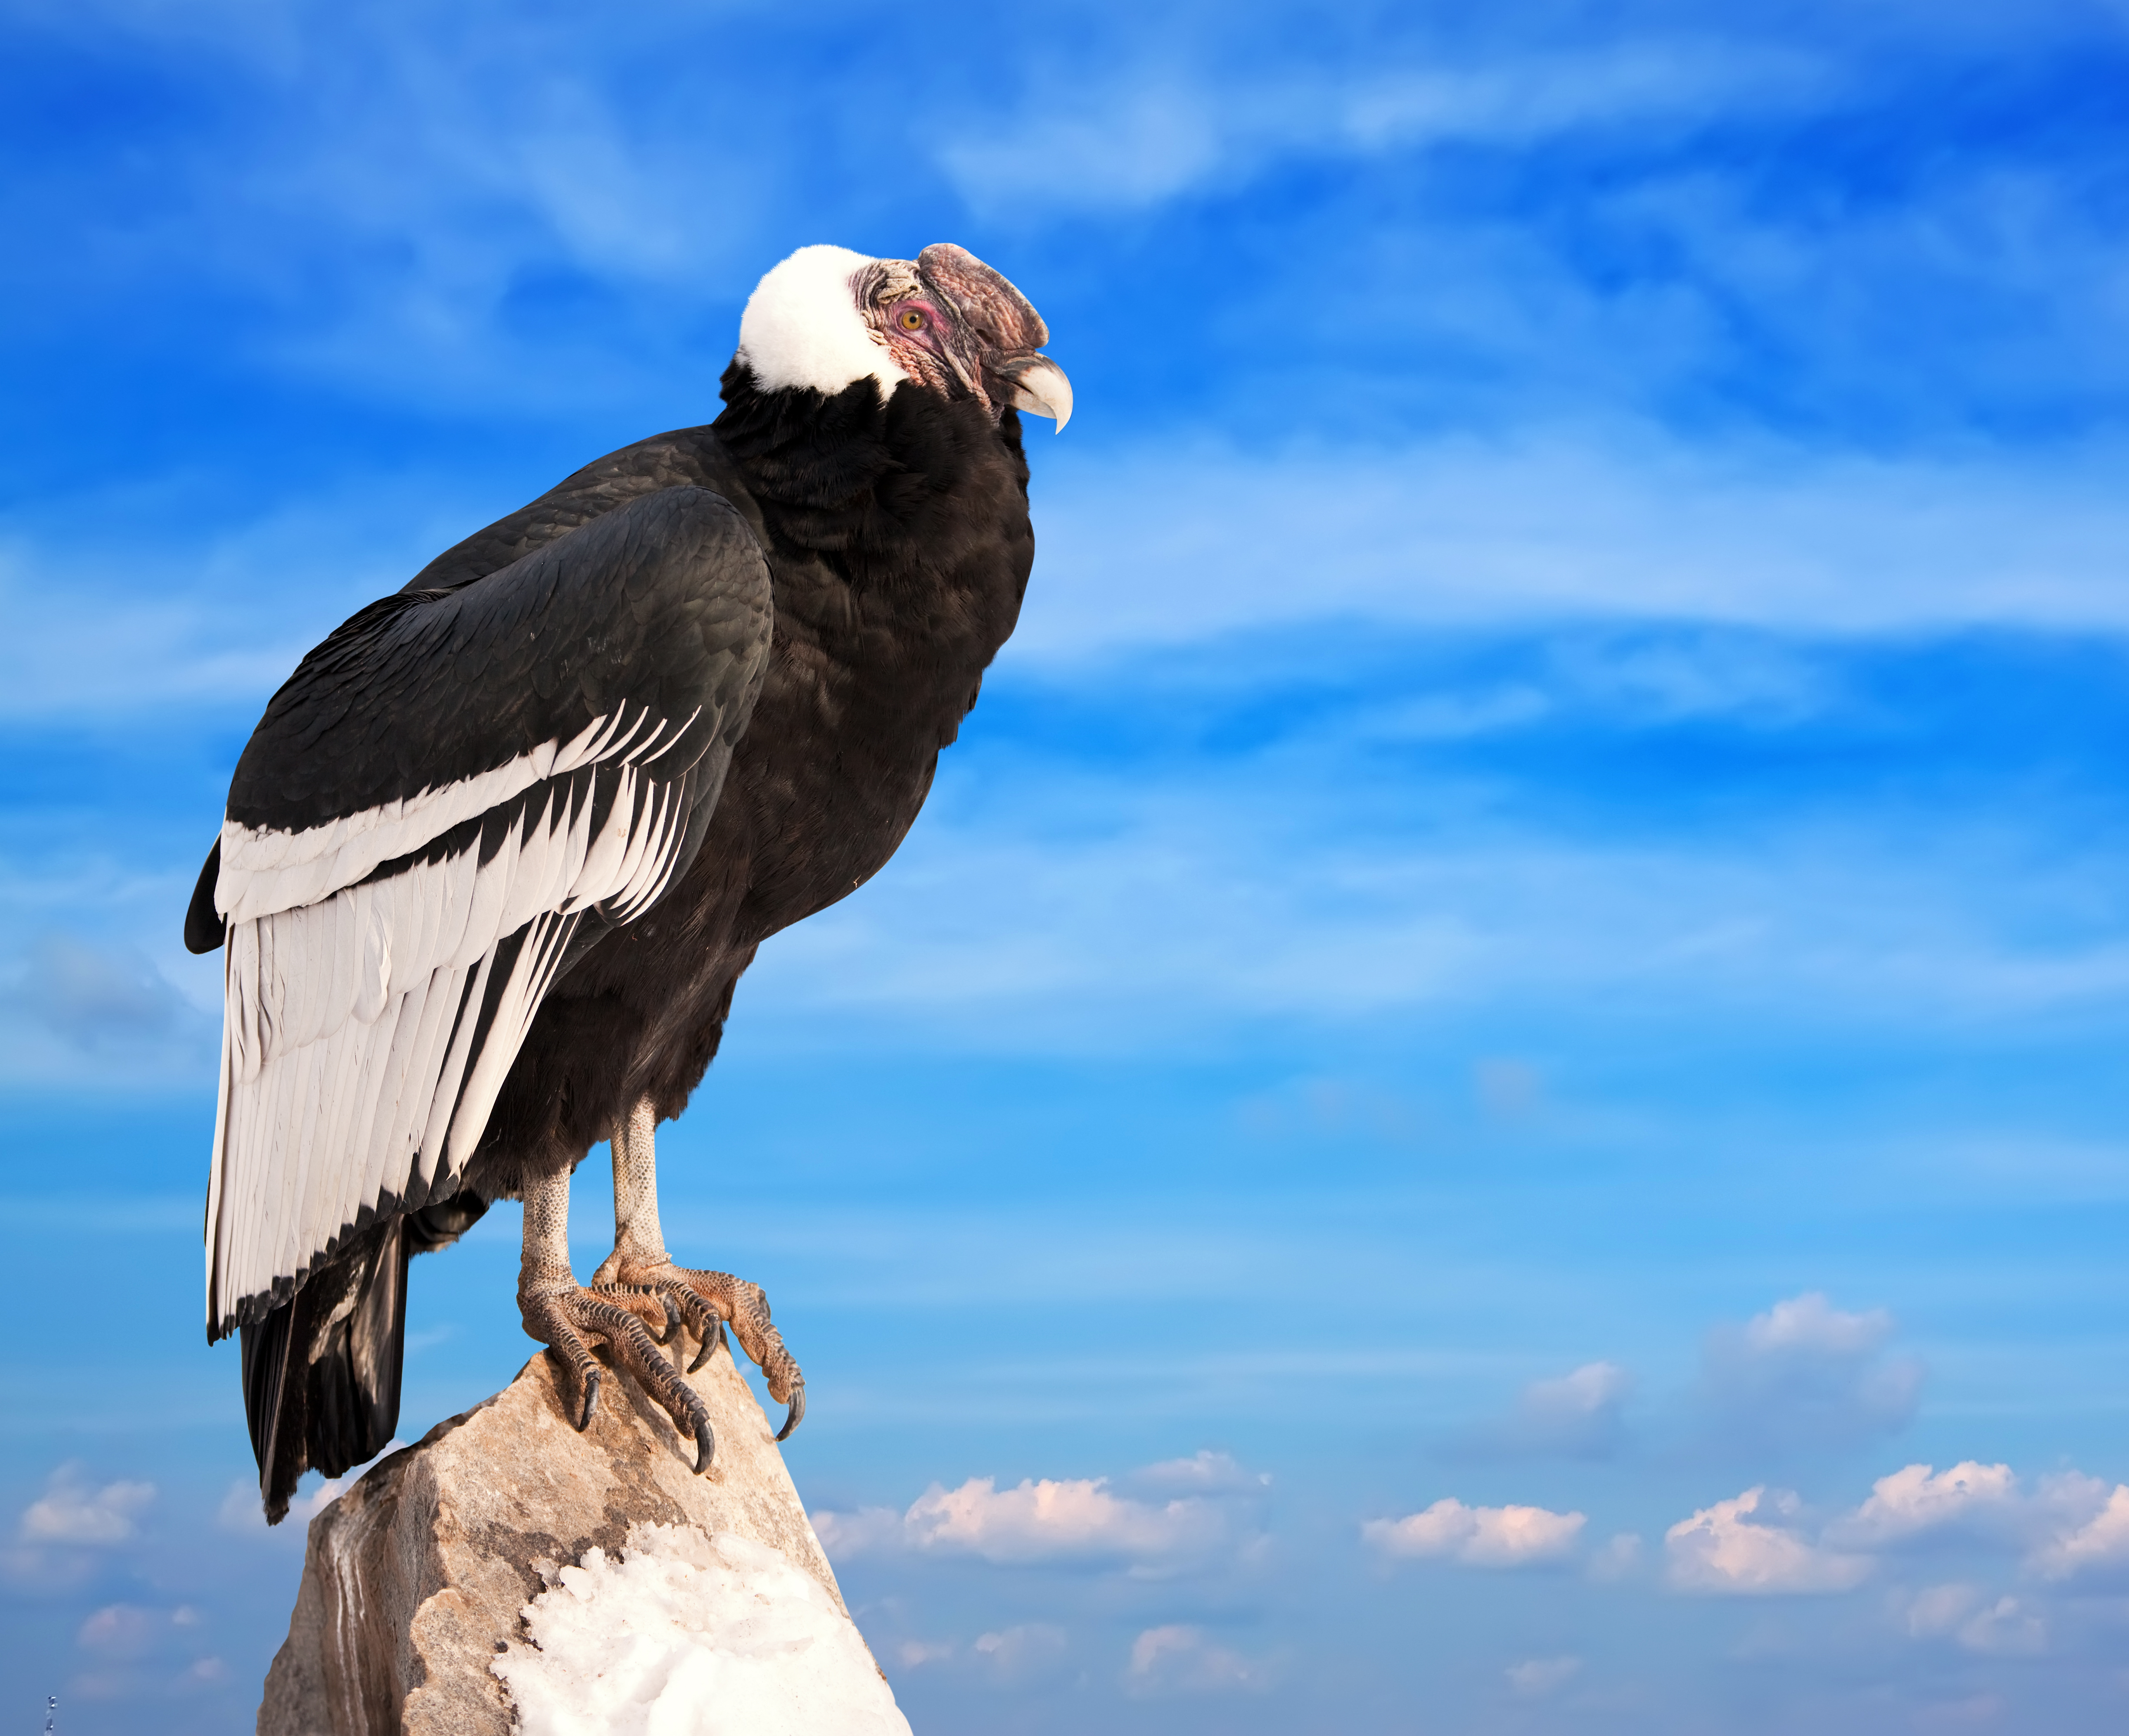 Andean condor sitting on rock against sky background